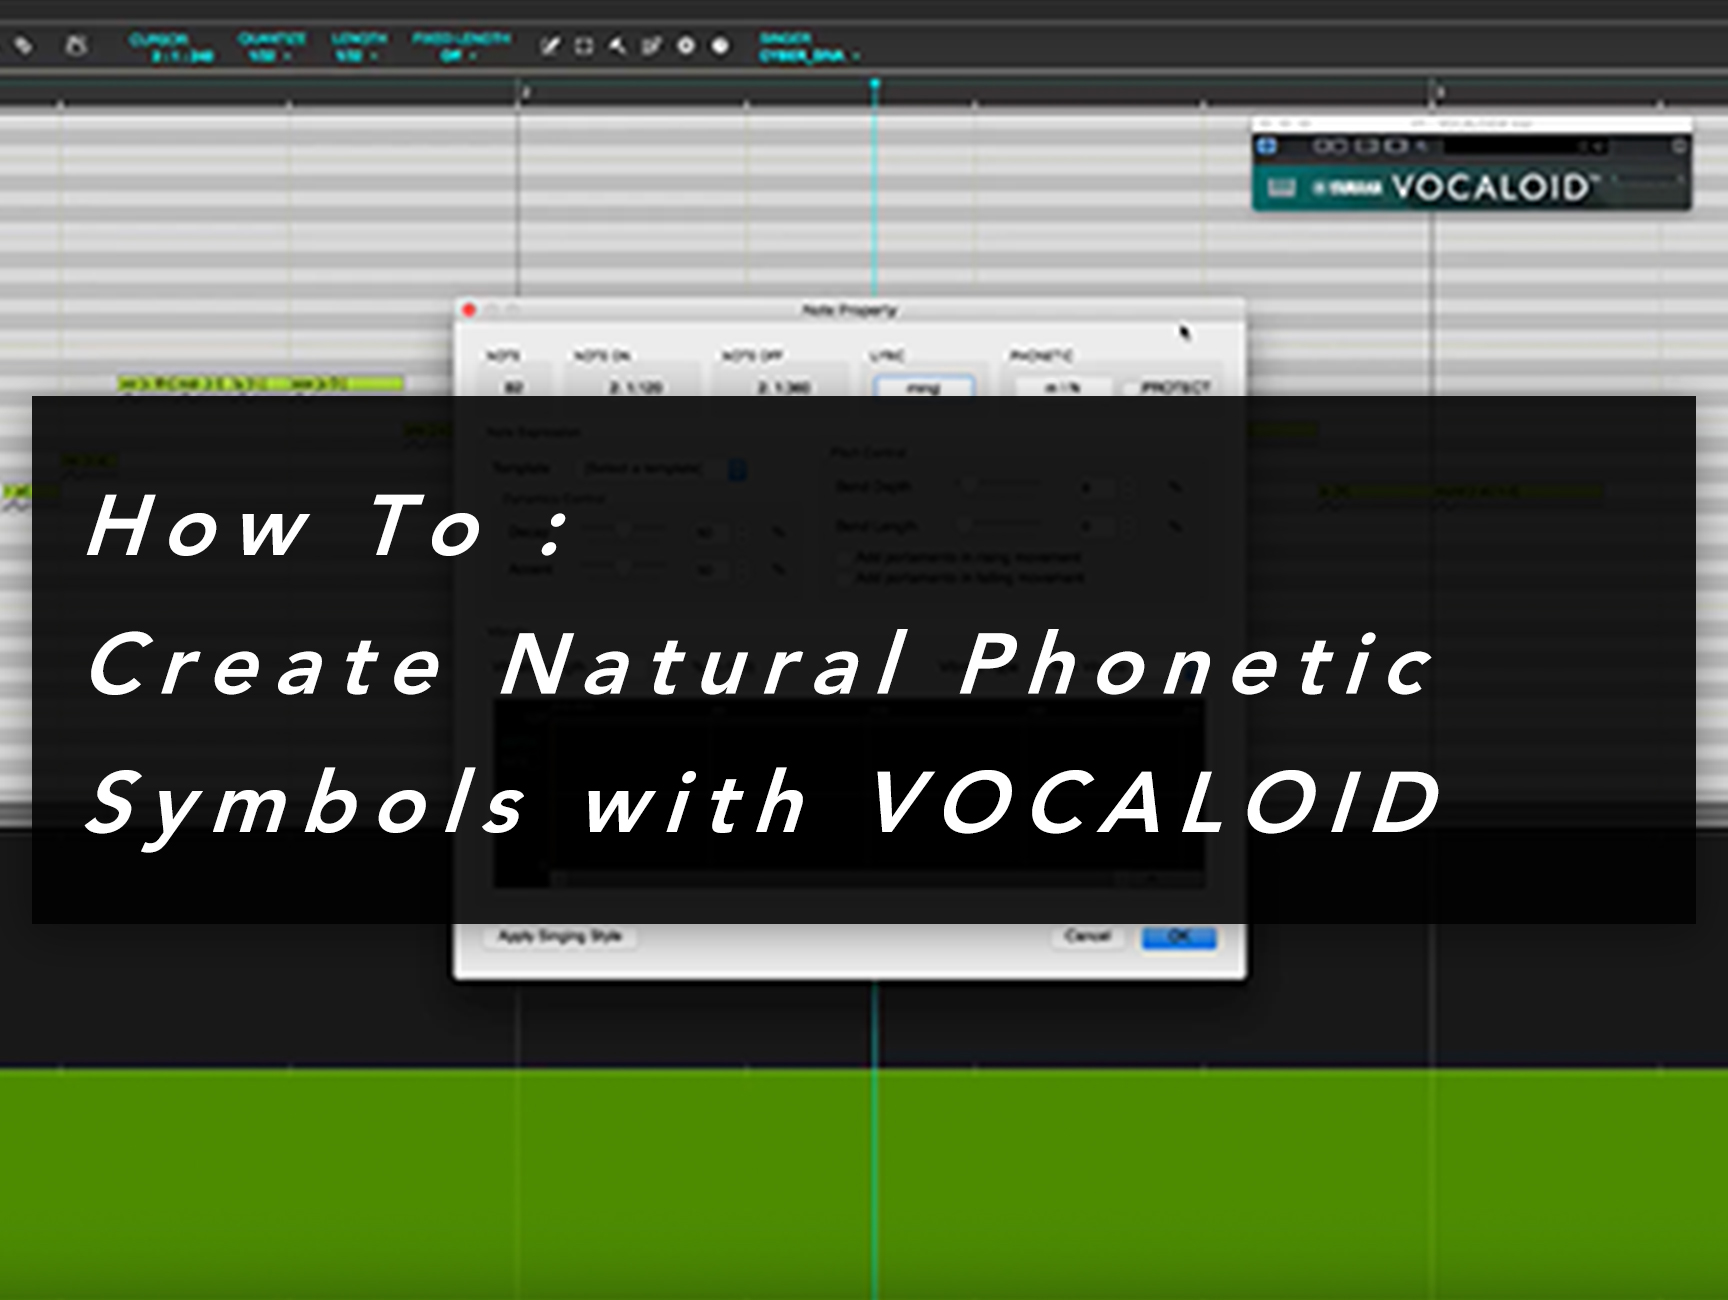 How to: Create Natural Phonemes with VOCALOID4 CYBER DIVA